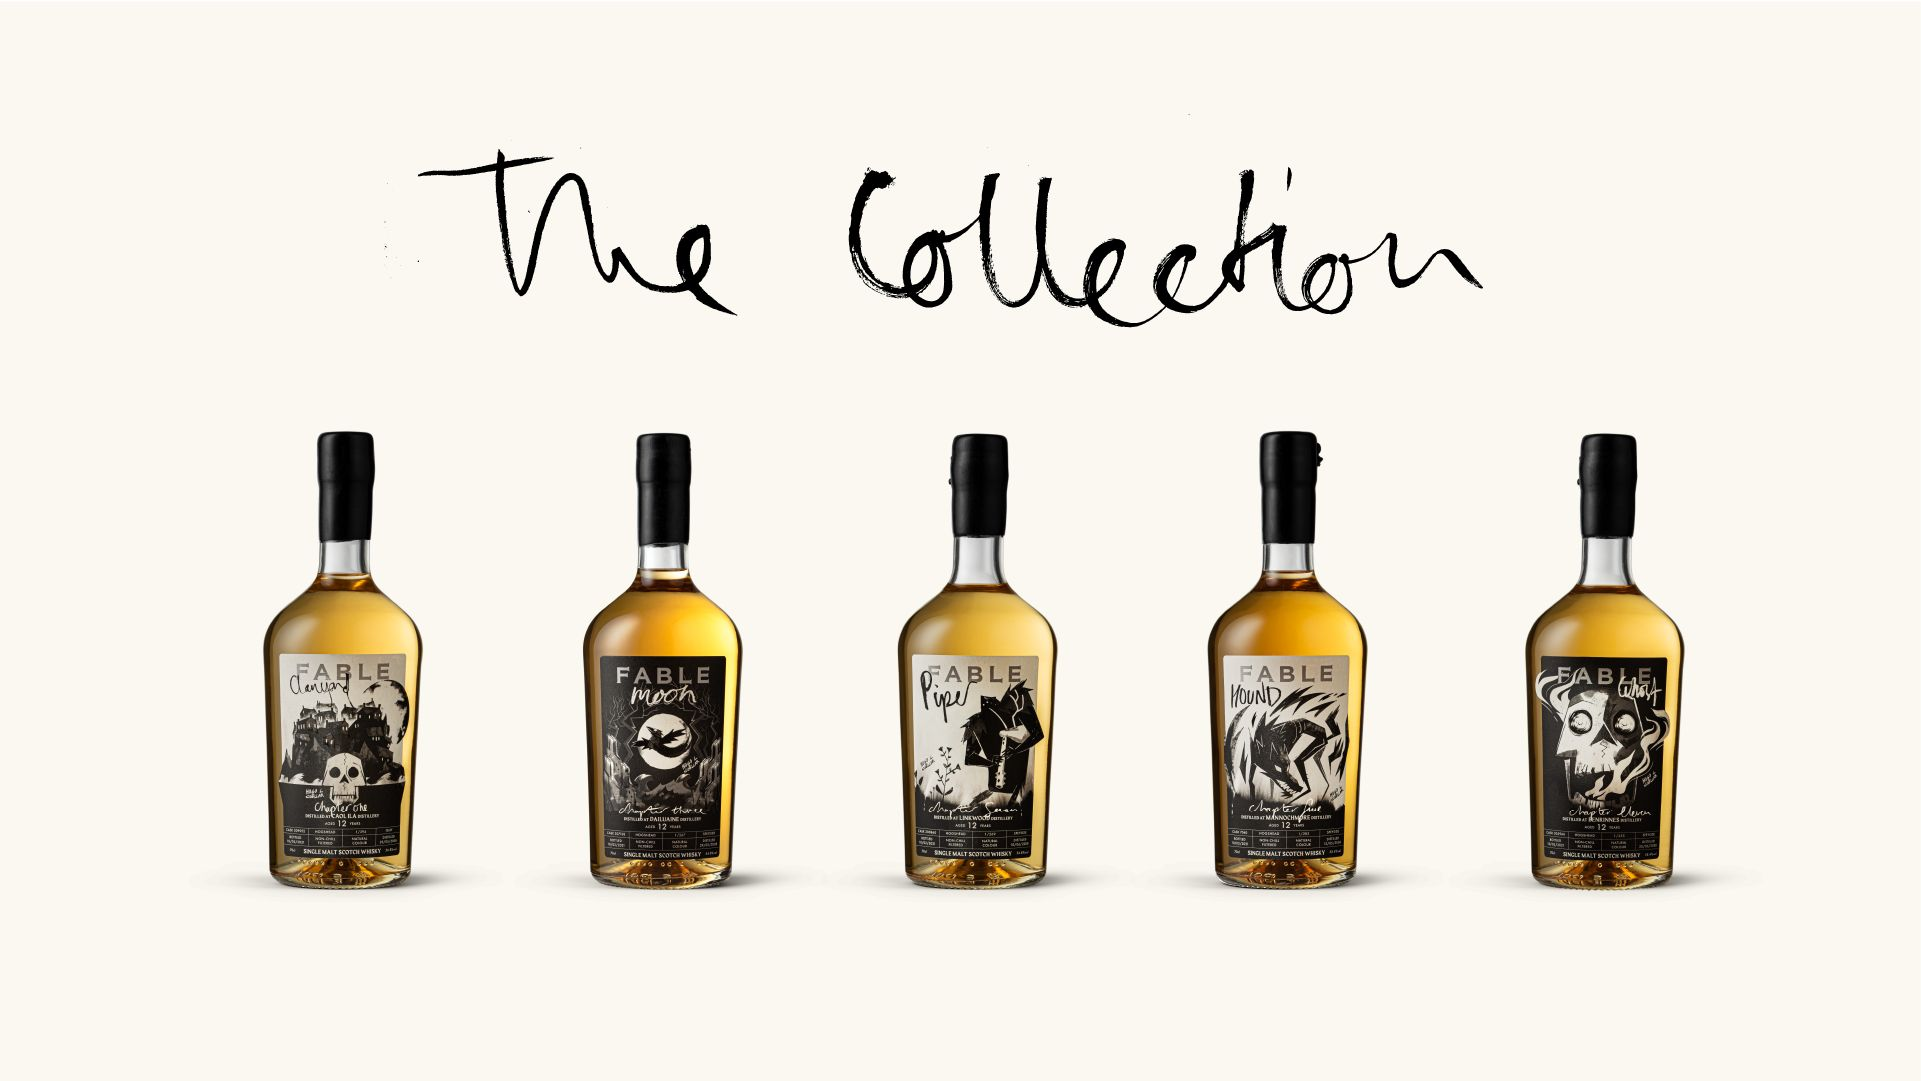 Fable whisky - The collection - Bouteille - Whisky - Distillerie - Ecosse